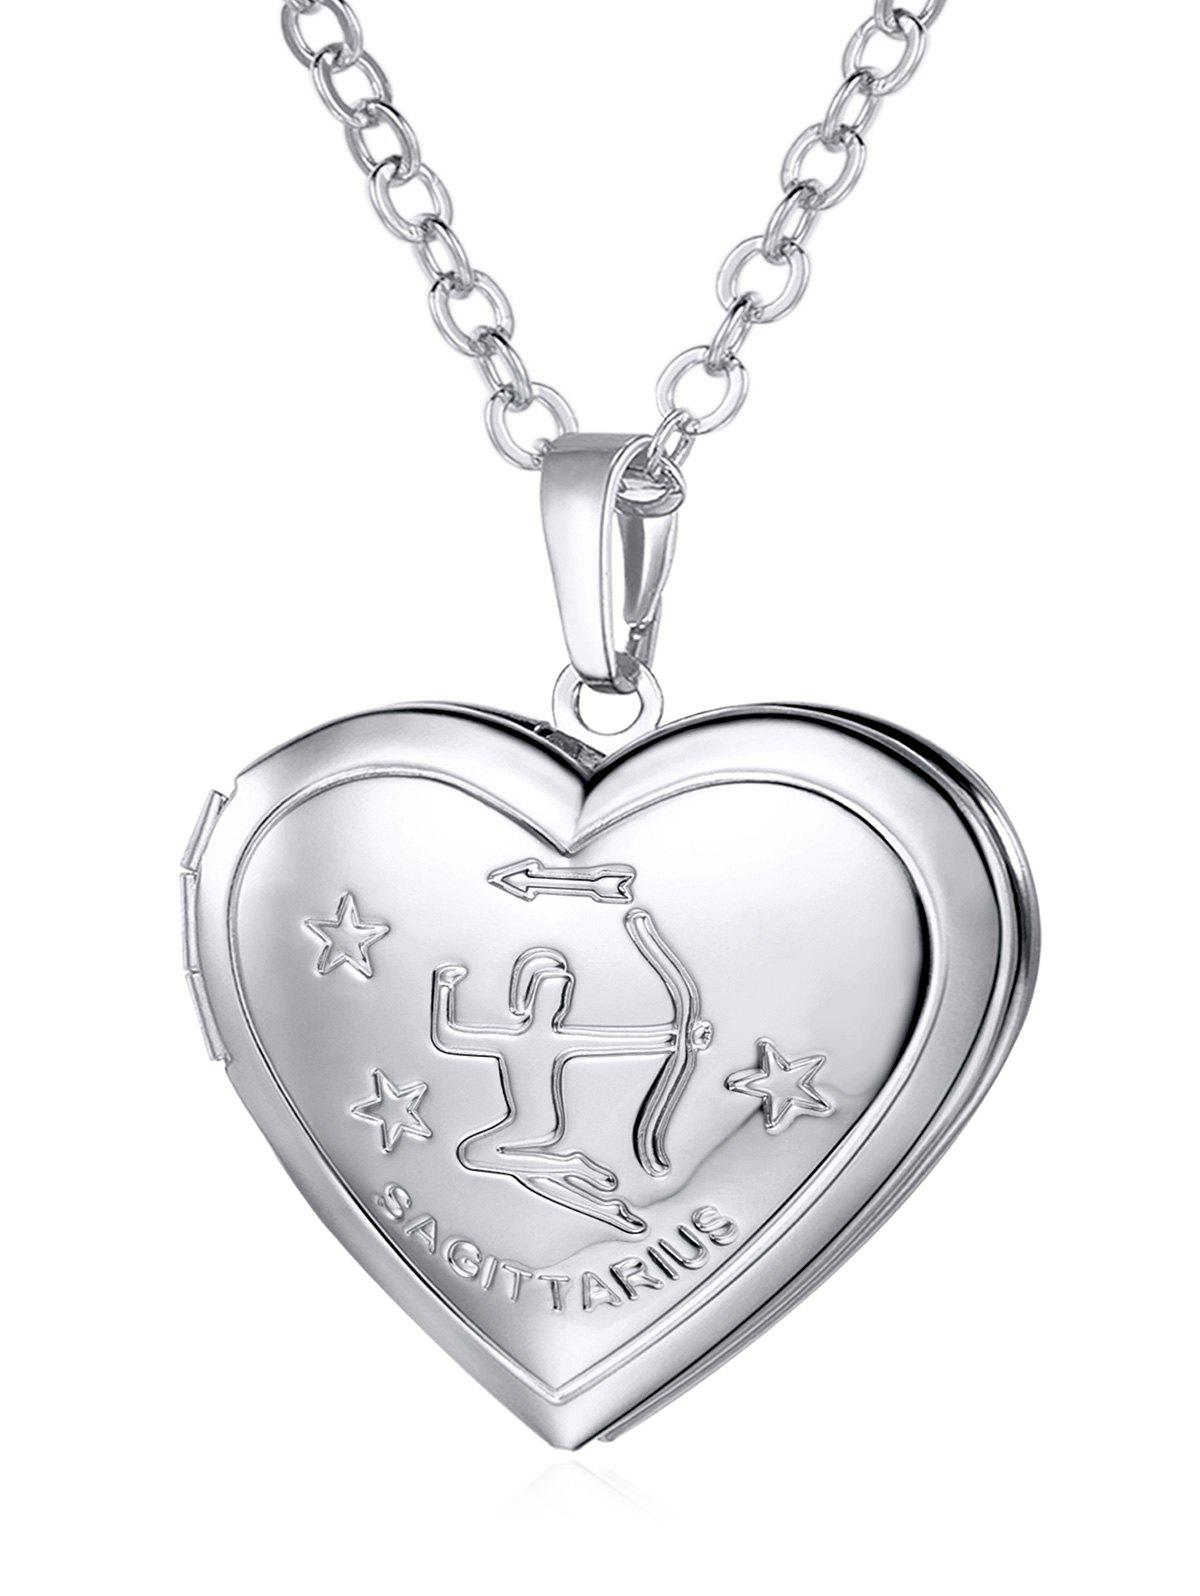 Unique Carved Heart Shaped Box Pendant Necklace - SILVER